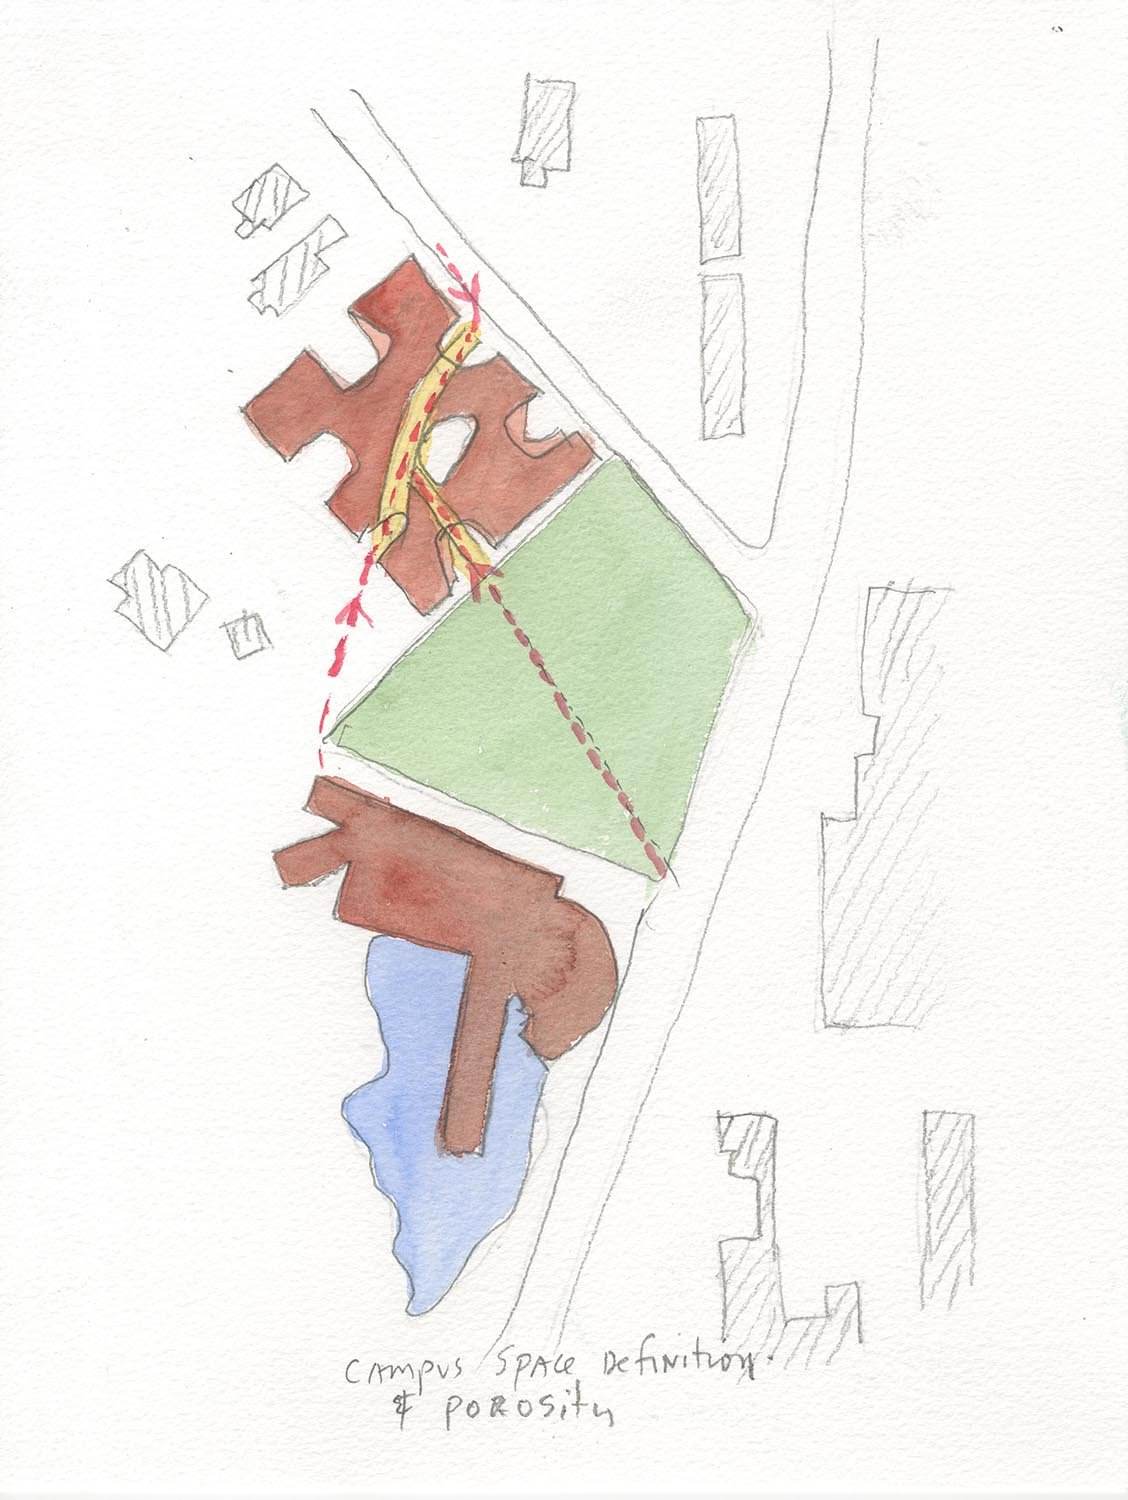 Watercolor concept sketch showing campus space definition and porosity, developing inviting ground floor public access through the building and forming an arts meadow with Art Building West }